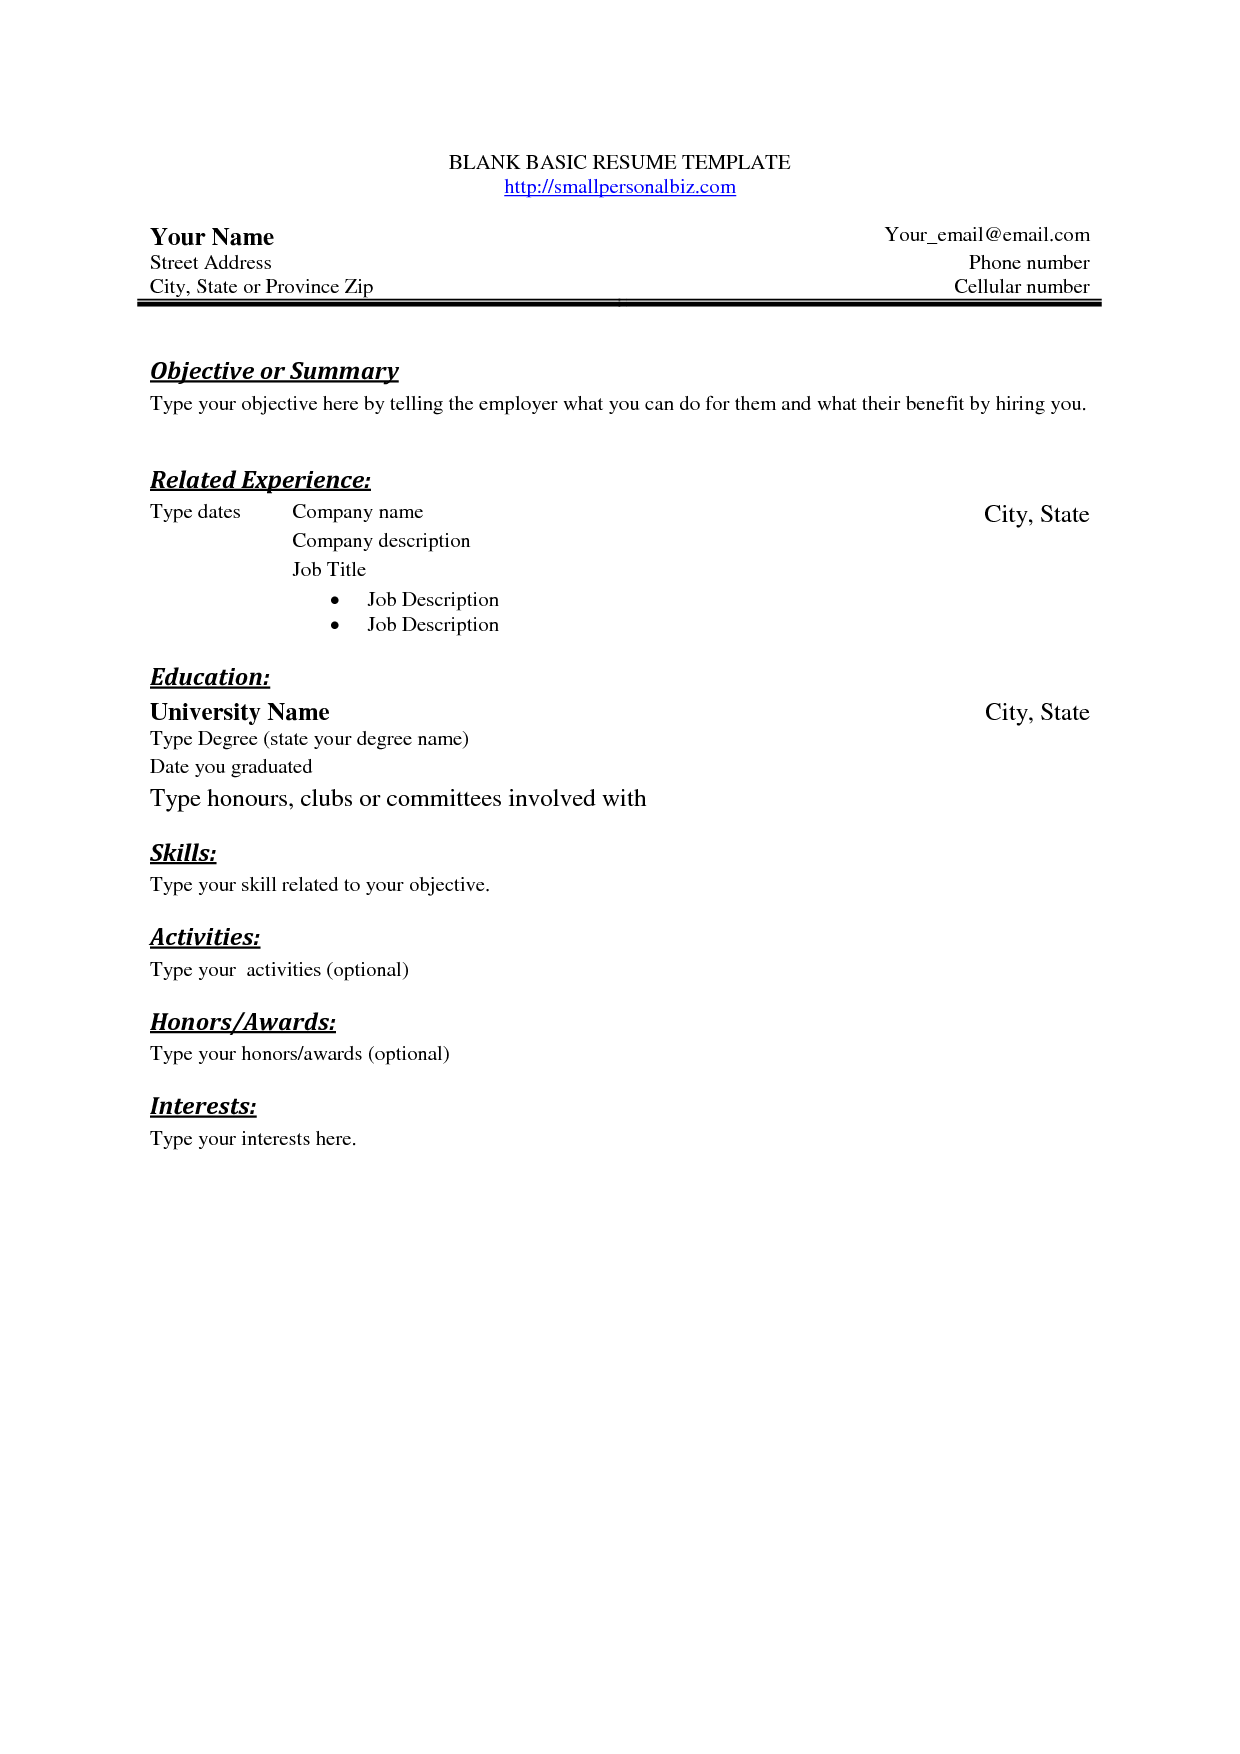 Copy Paste Resume Templates Stylist And Luxury Simple Resume Layout 10 Free Basic Blank Resume